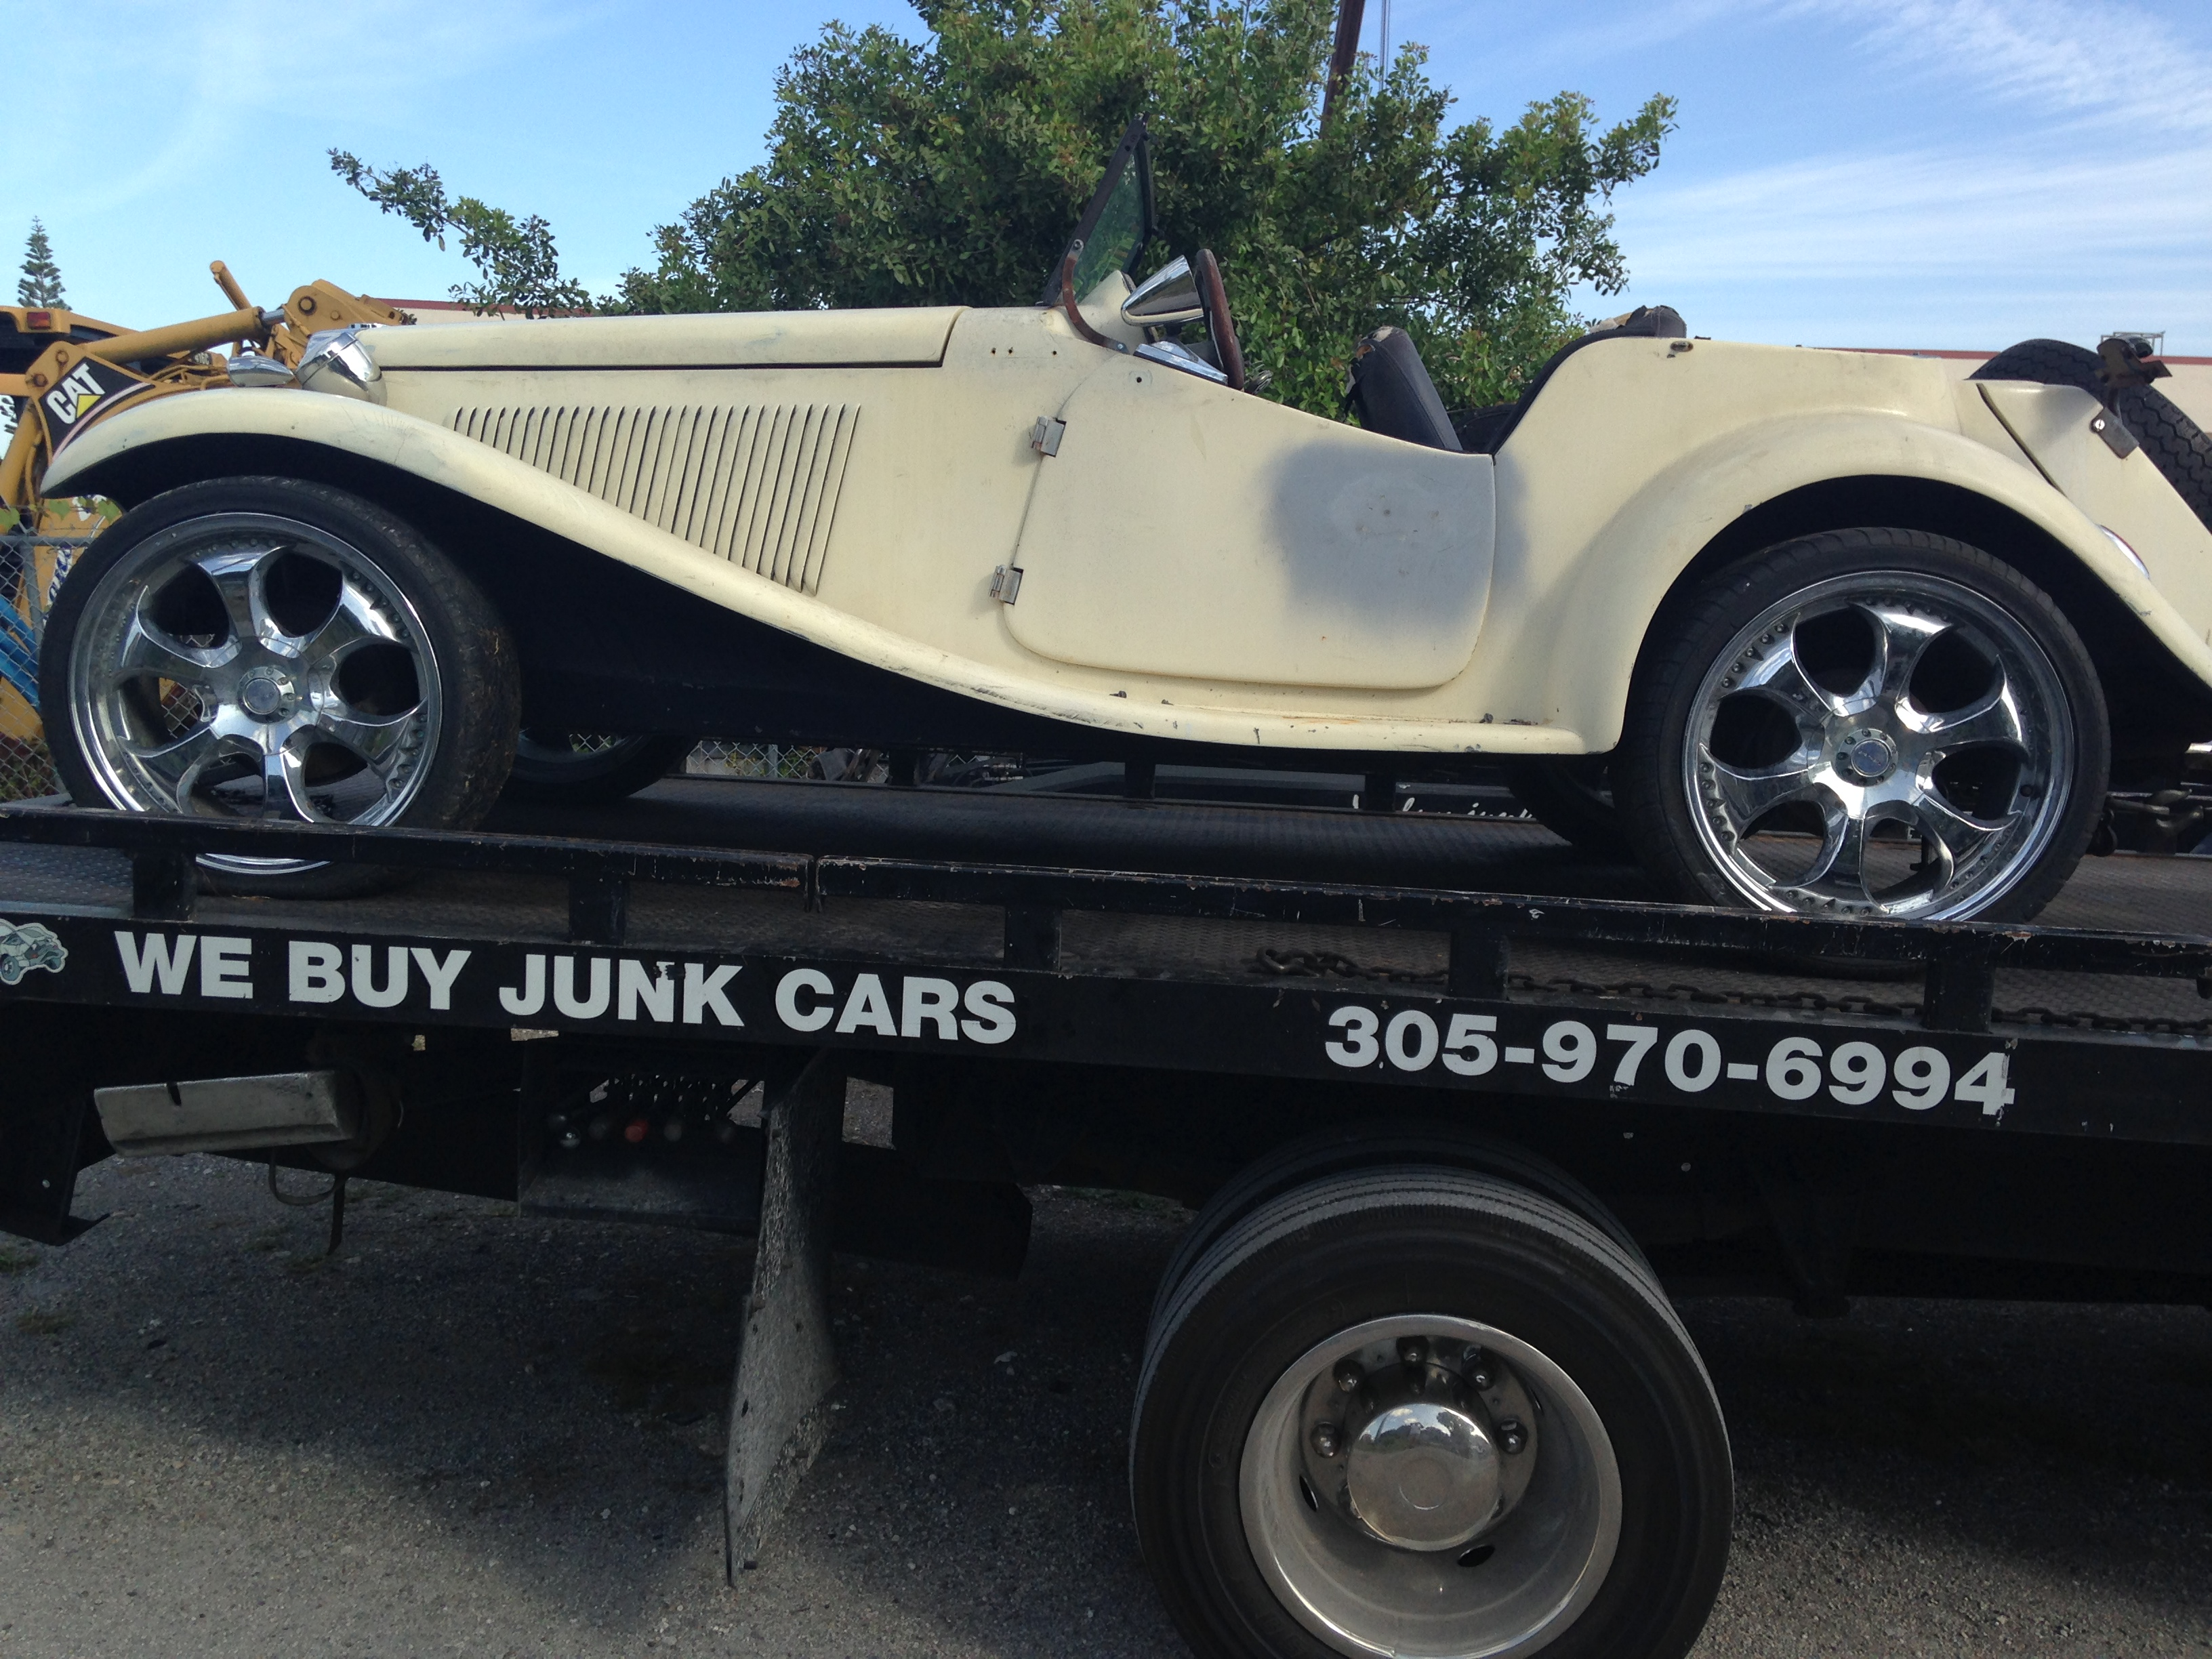 Cash for Junk Cars 14027 SW 144th Avenue Rd, Miami, FL 33186 - YP.com